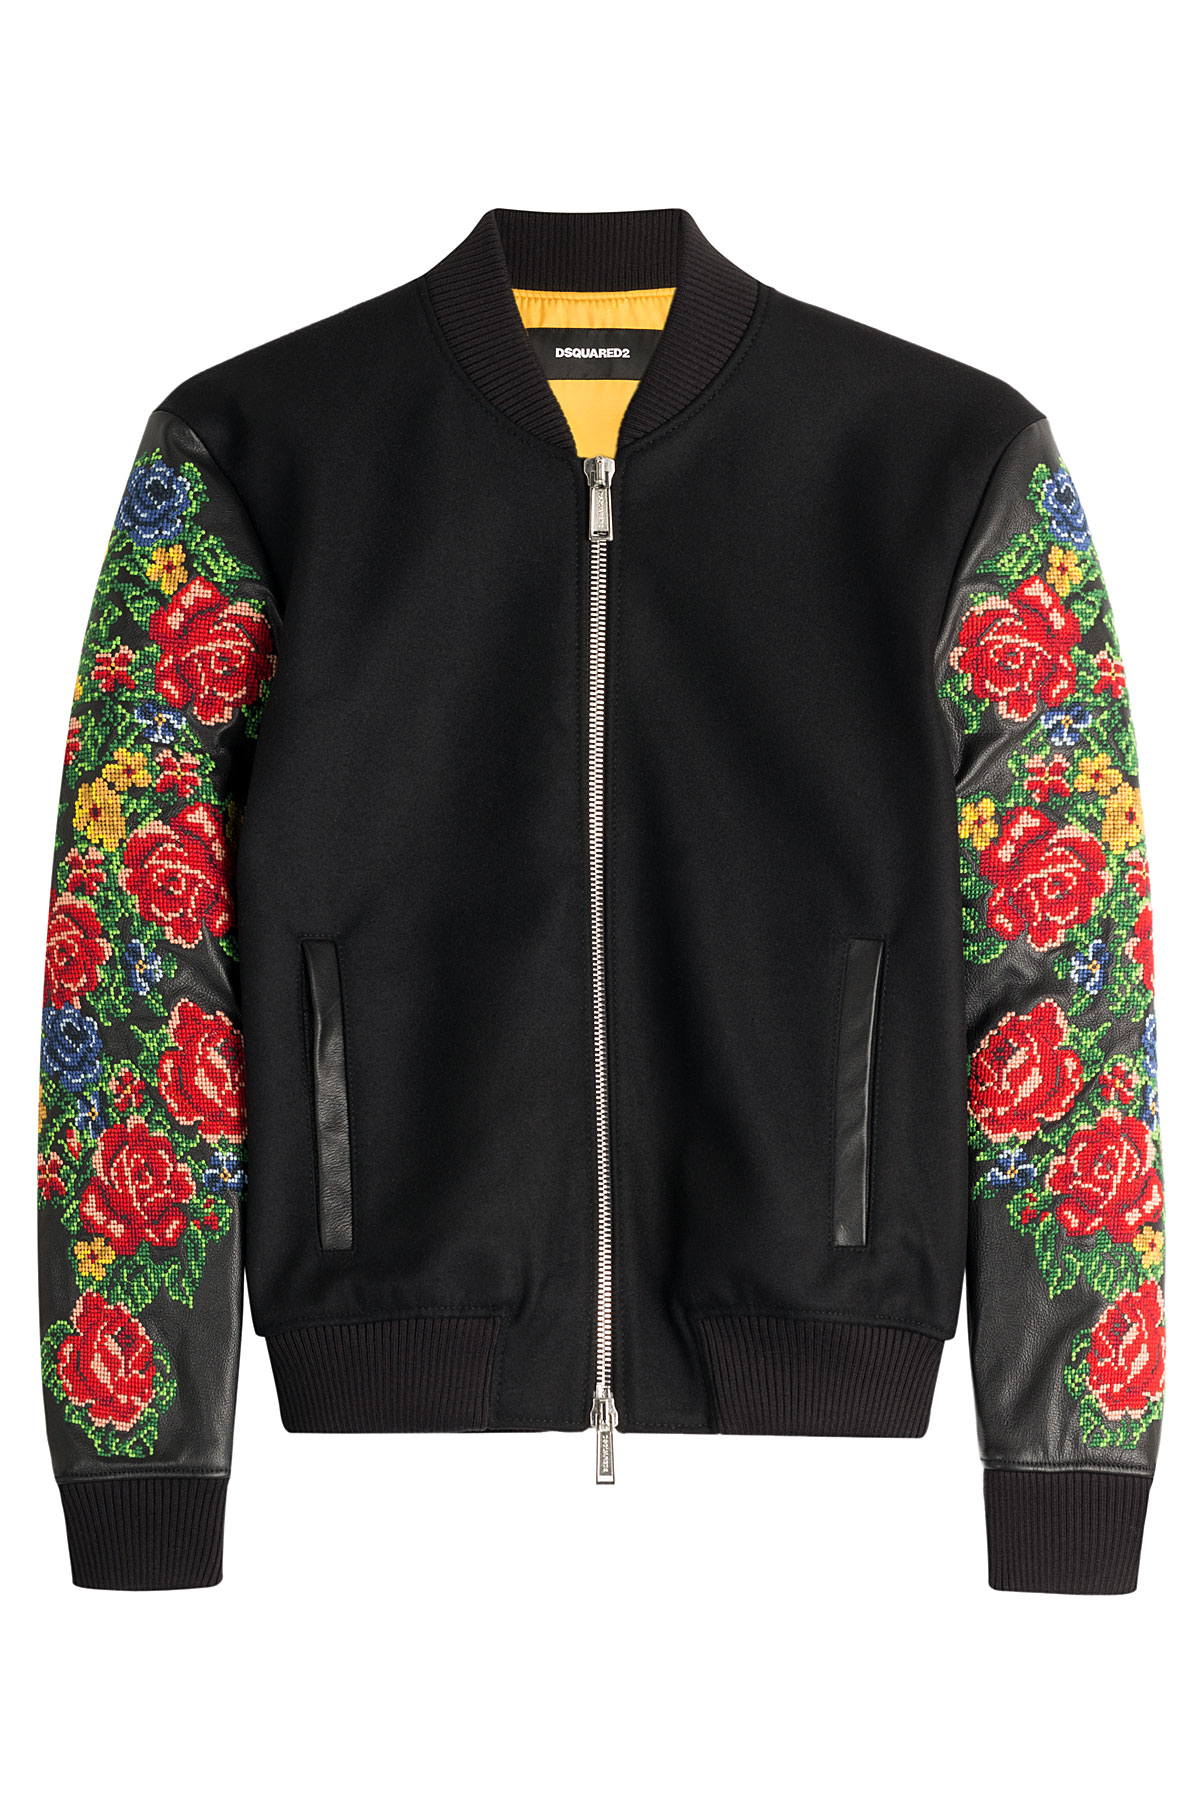 Dsquared² wool bomber jacket with embroidered sleeves